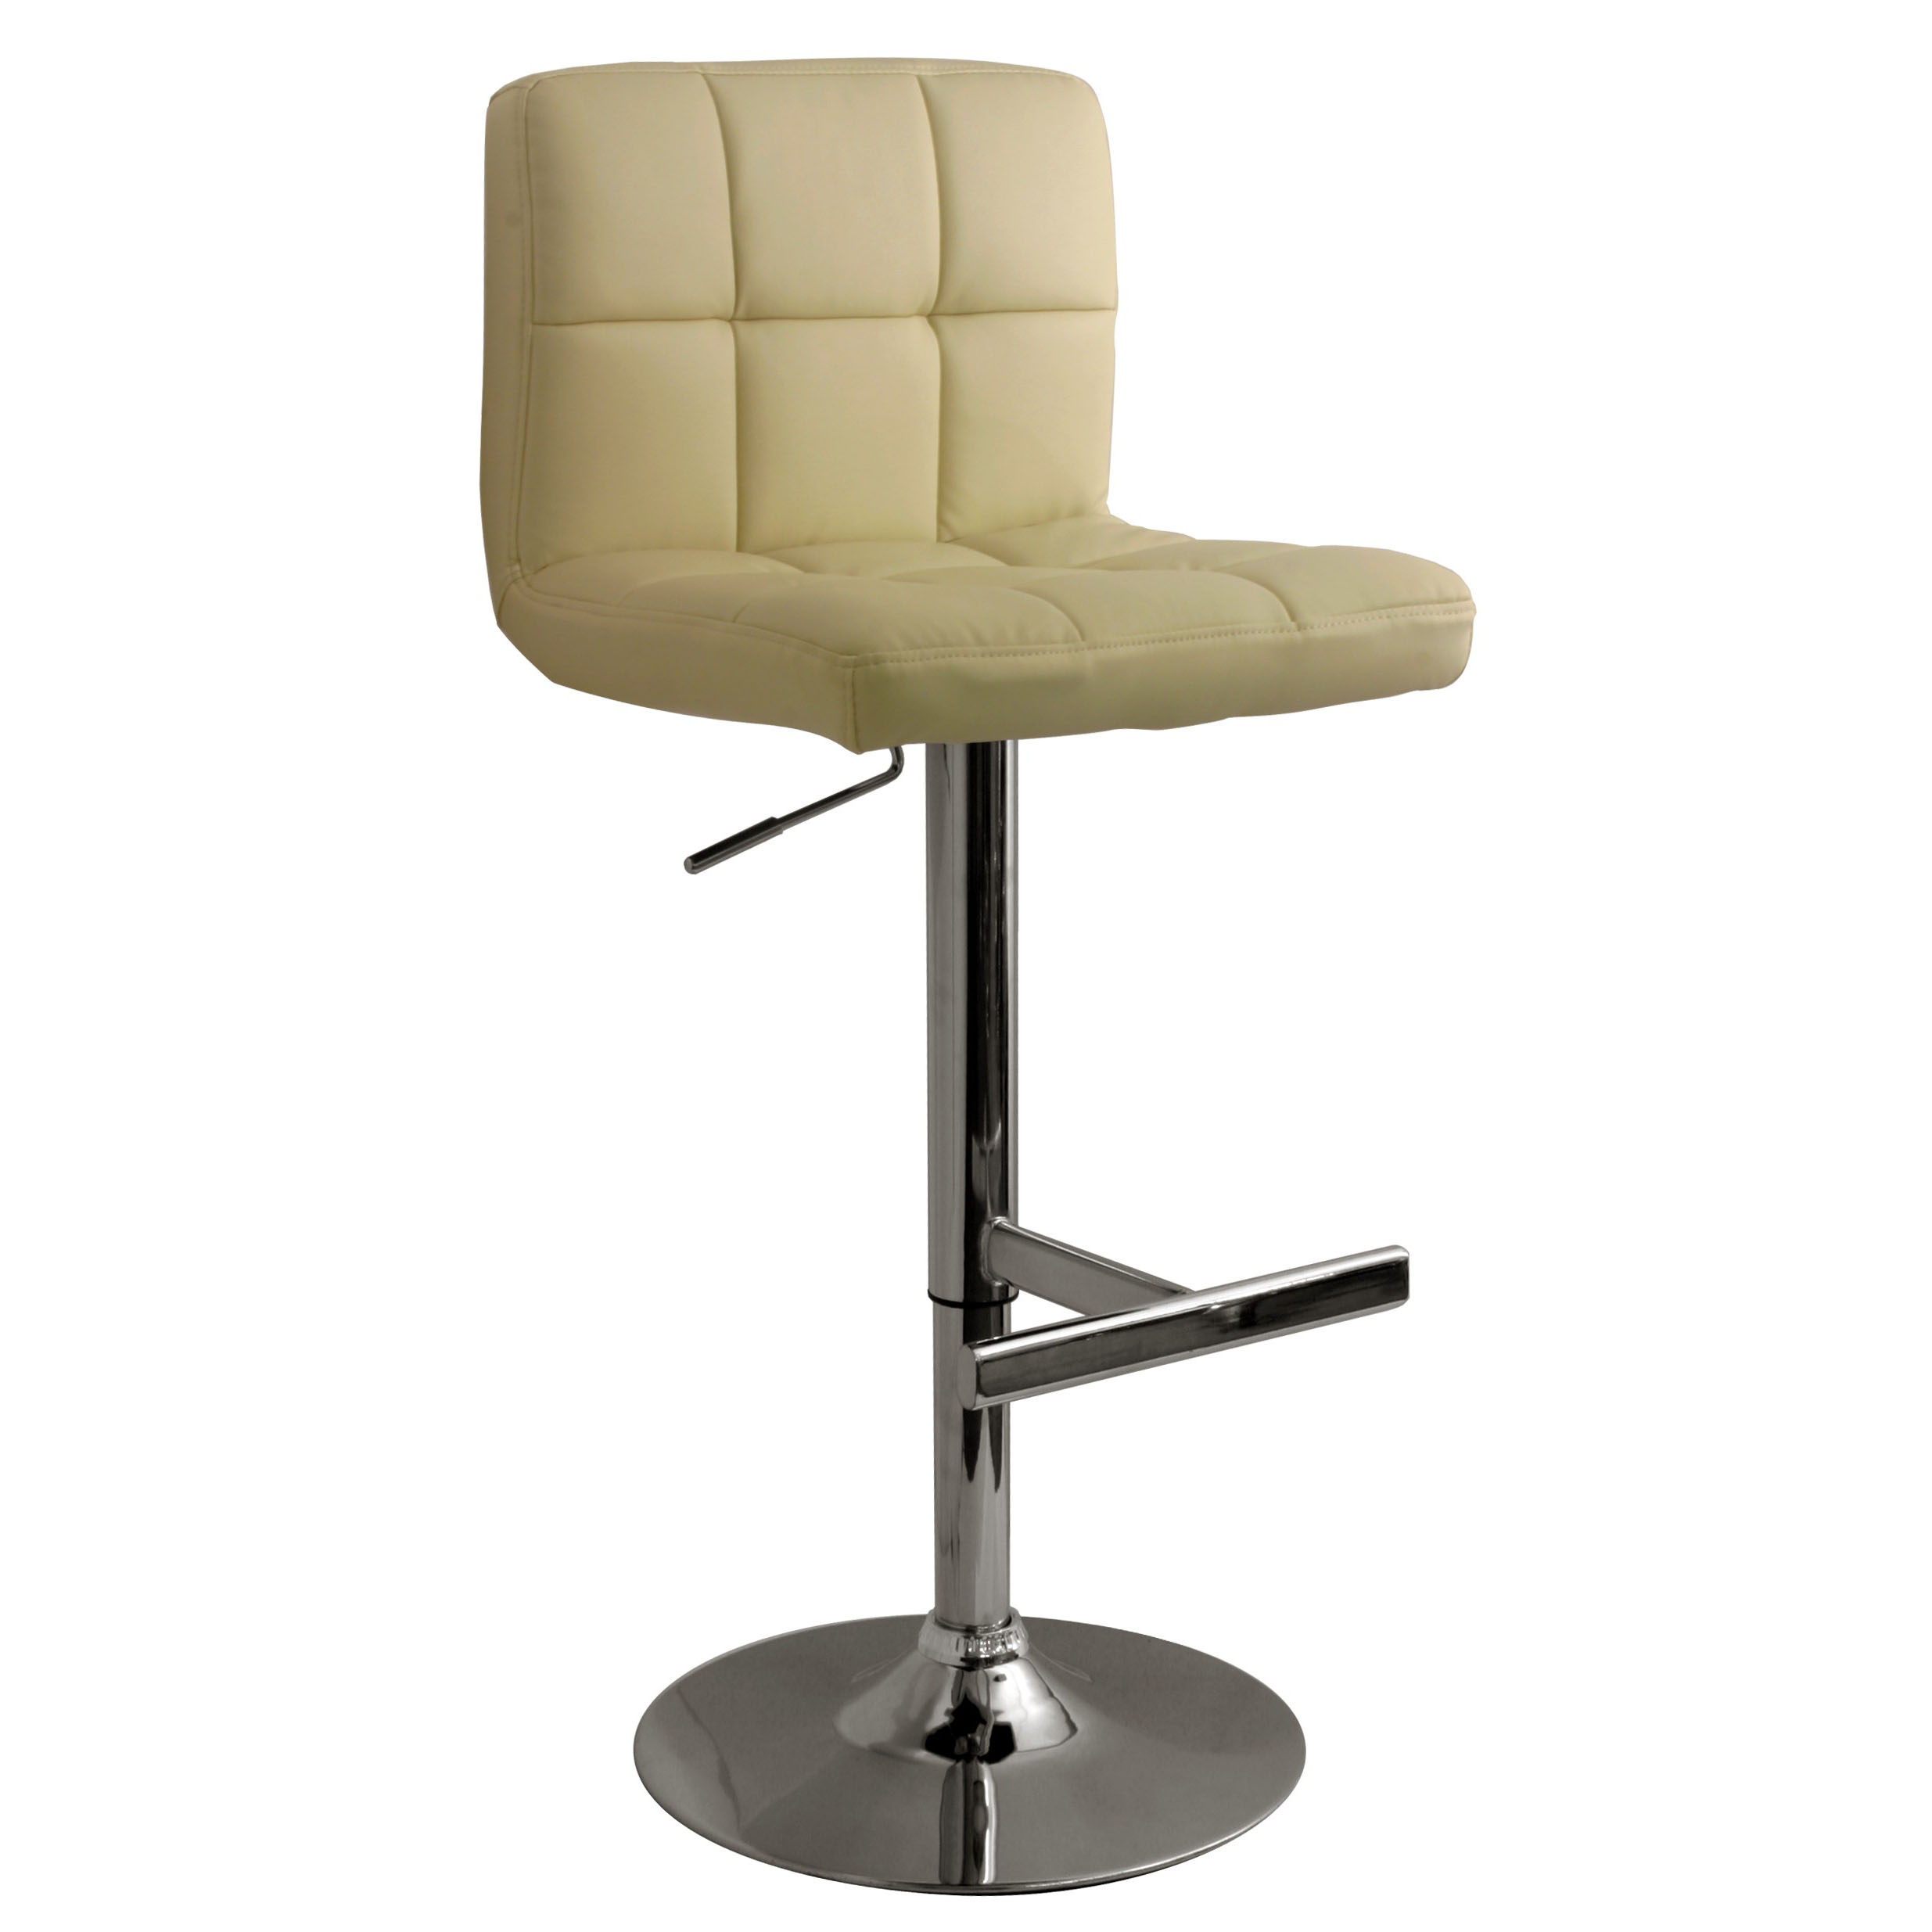 height inch morgancameronross stool nailhead counter modern leather l stools com seat bar ikea grey